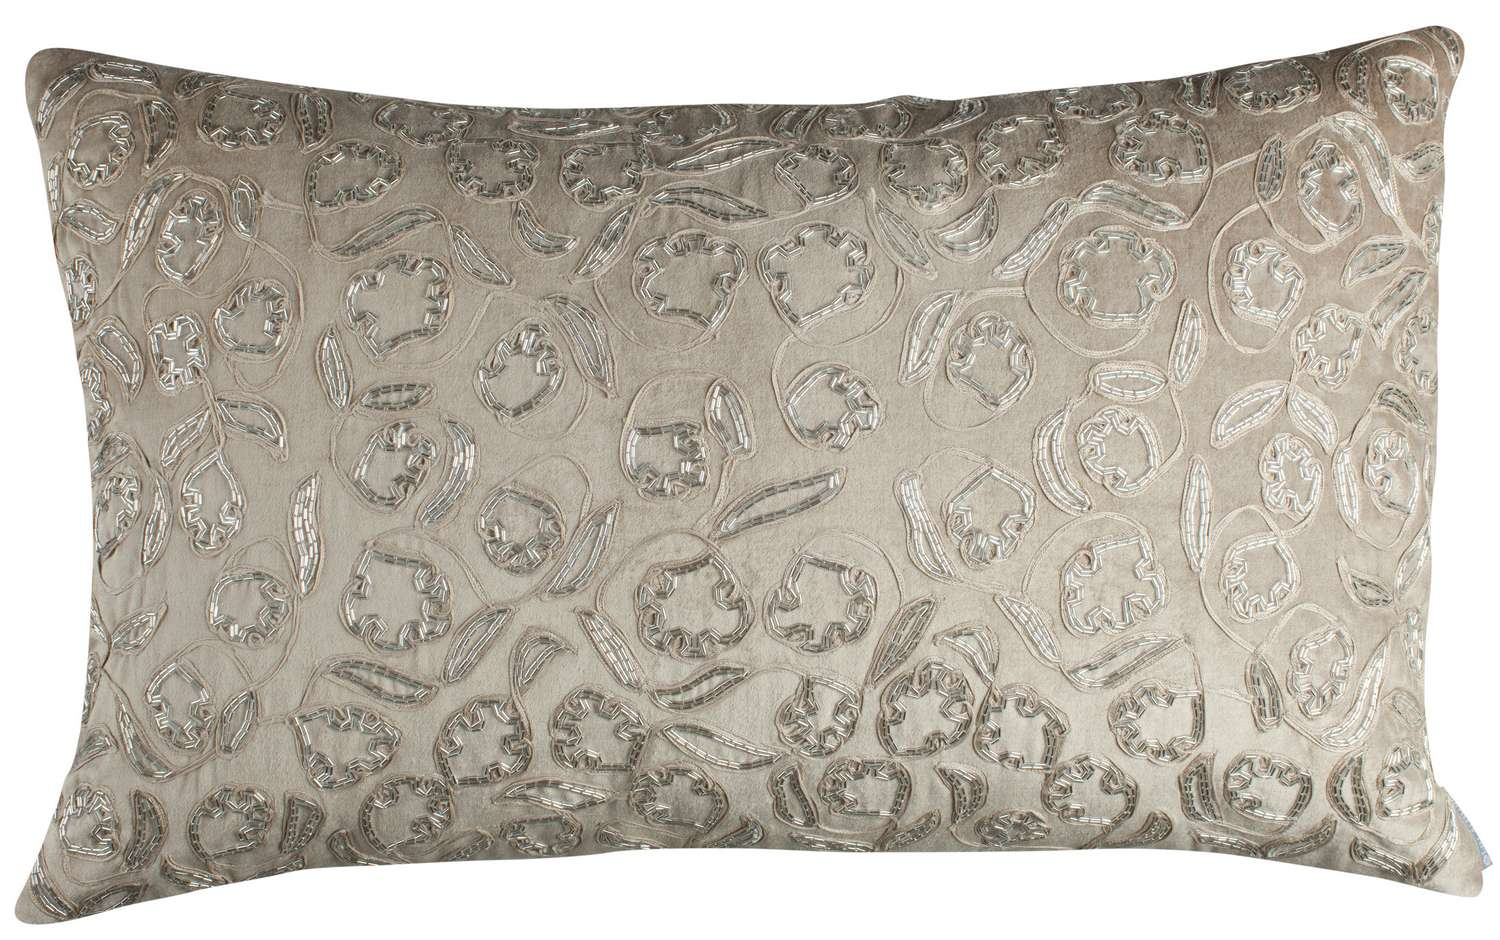 Decorative Pillows With Beads : Lili Alessandra Ellie Accents with Silver Beads Decorative Pillows